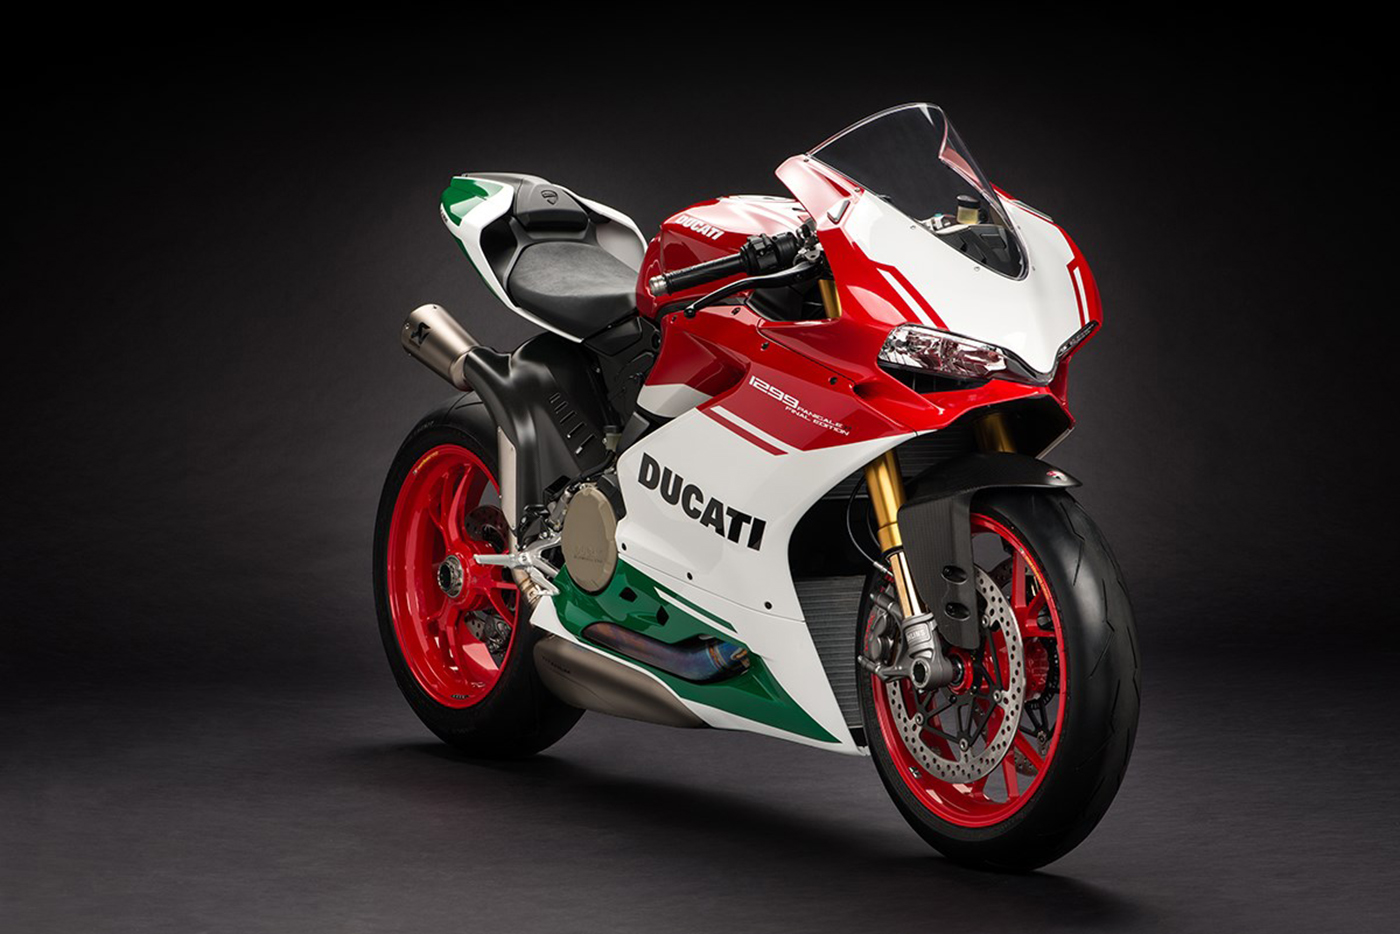 ducati-1299-panigale-r-final-edition-14.jpg